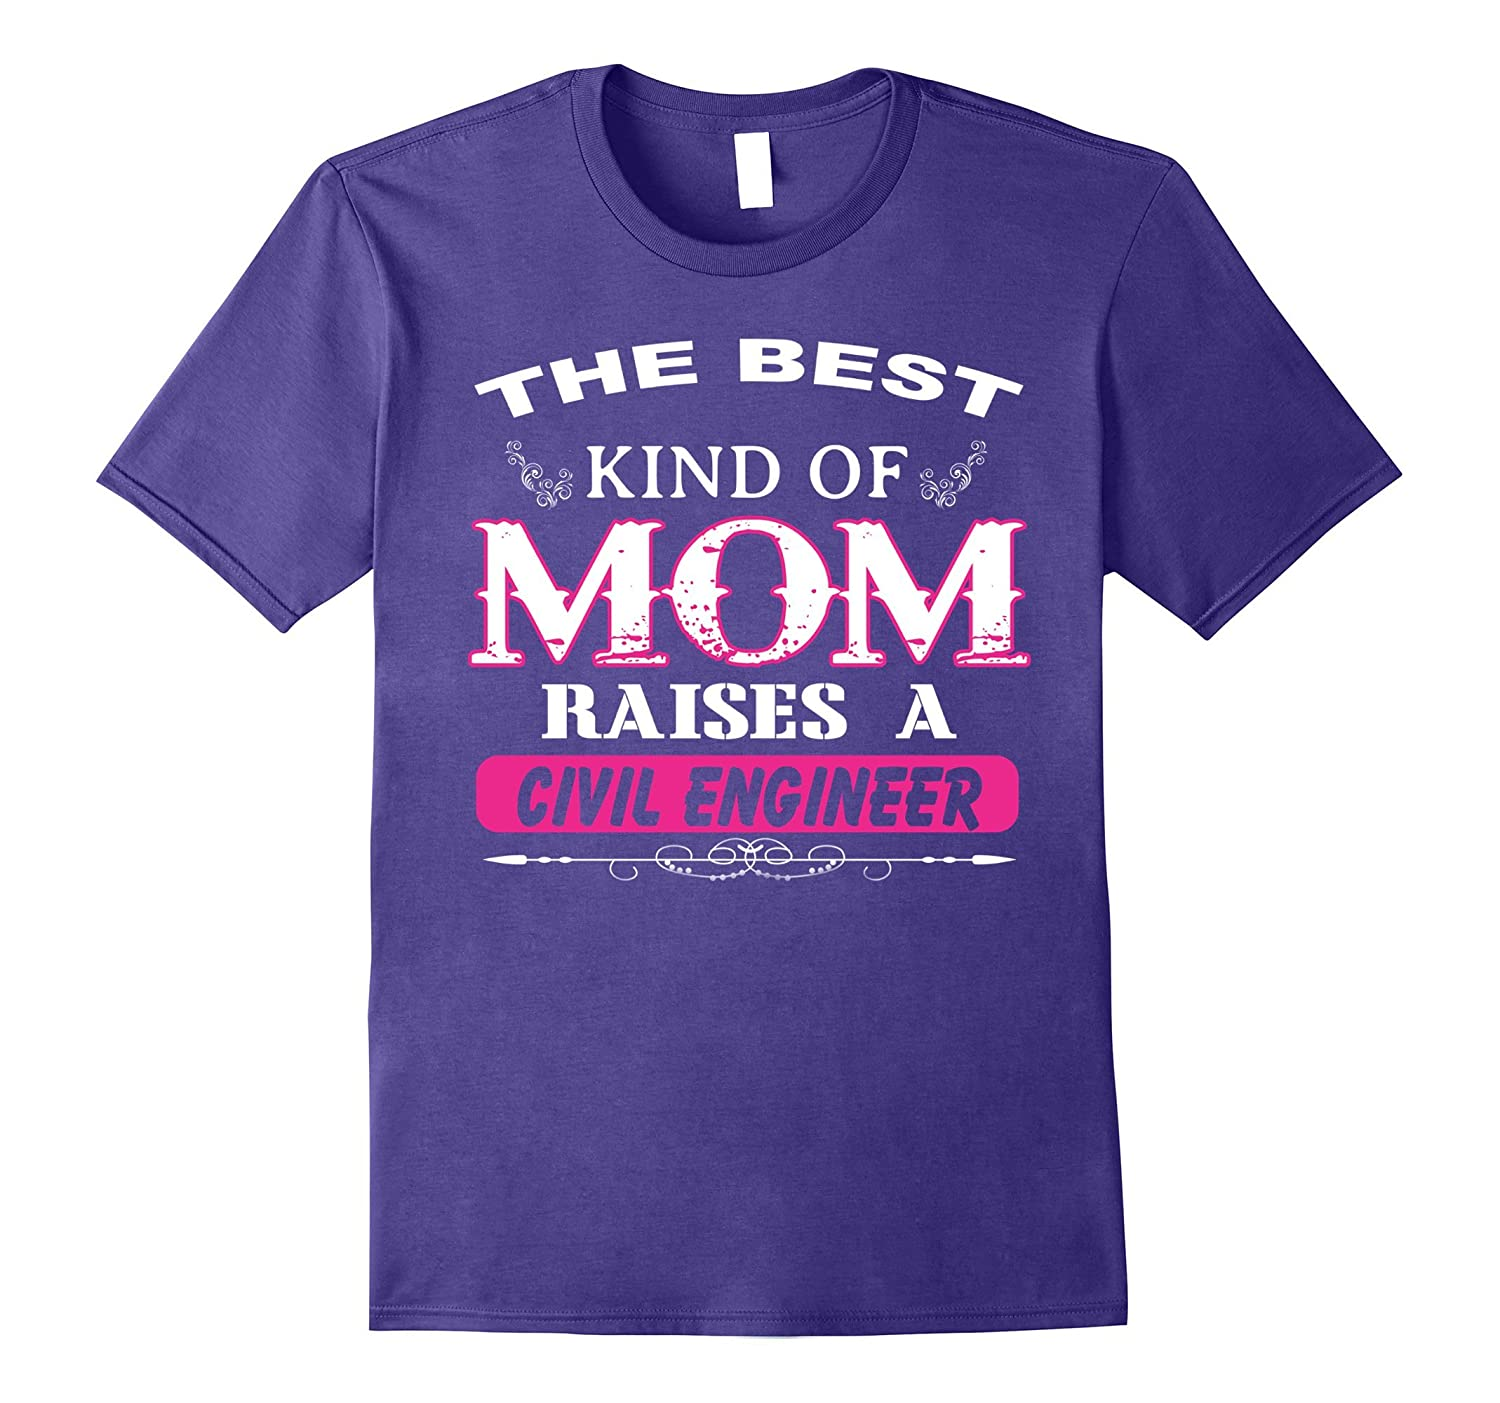 The Best Kind Of Mom Raises A Civil Engineer T-shirt-Vaci